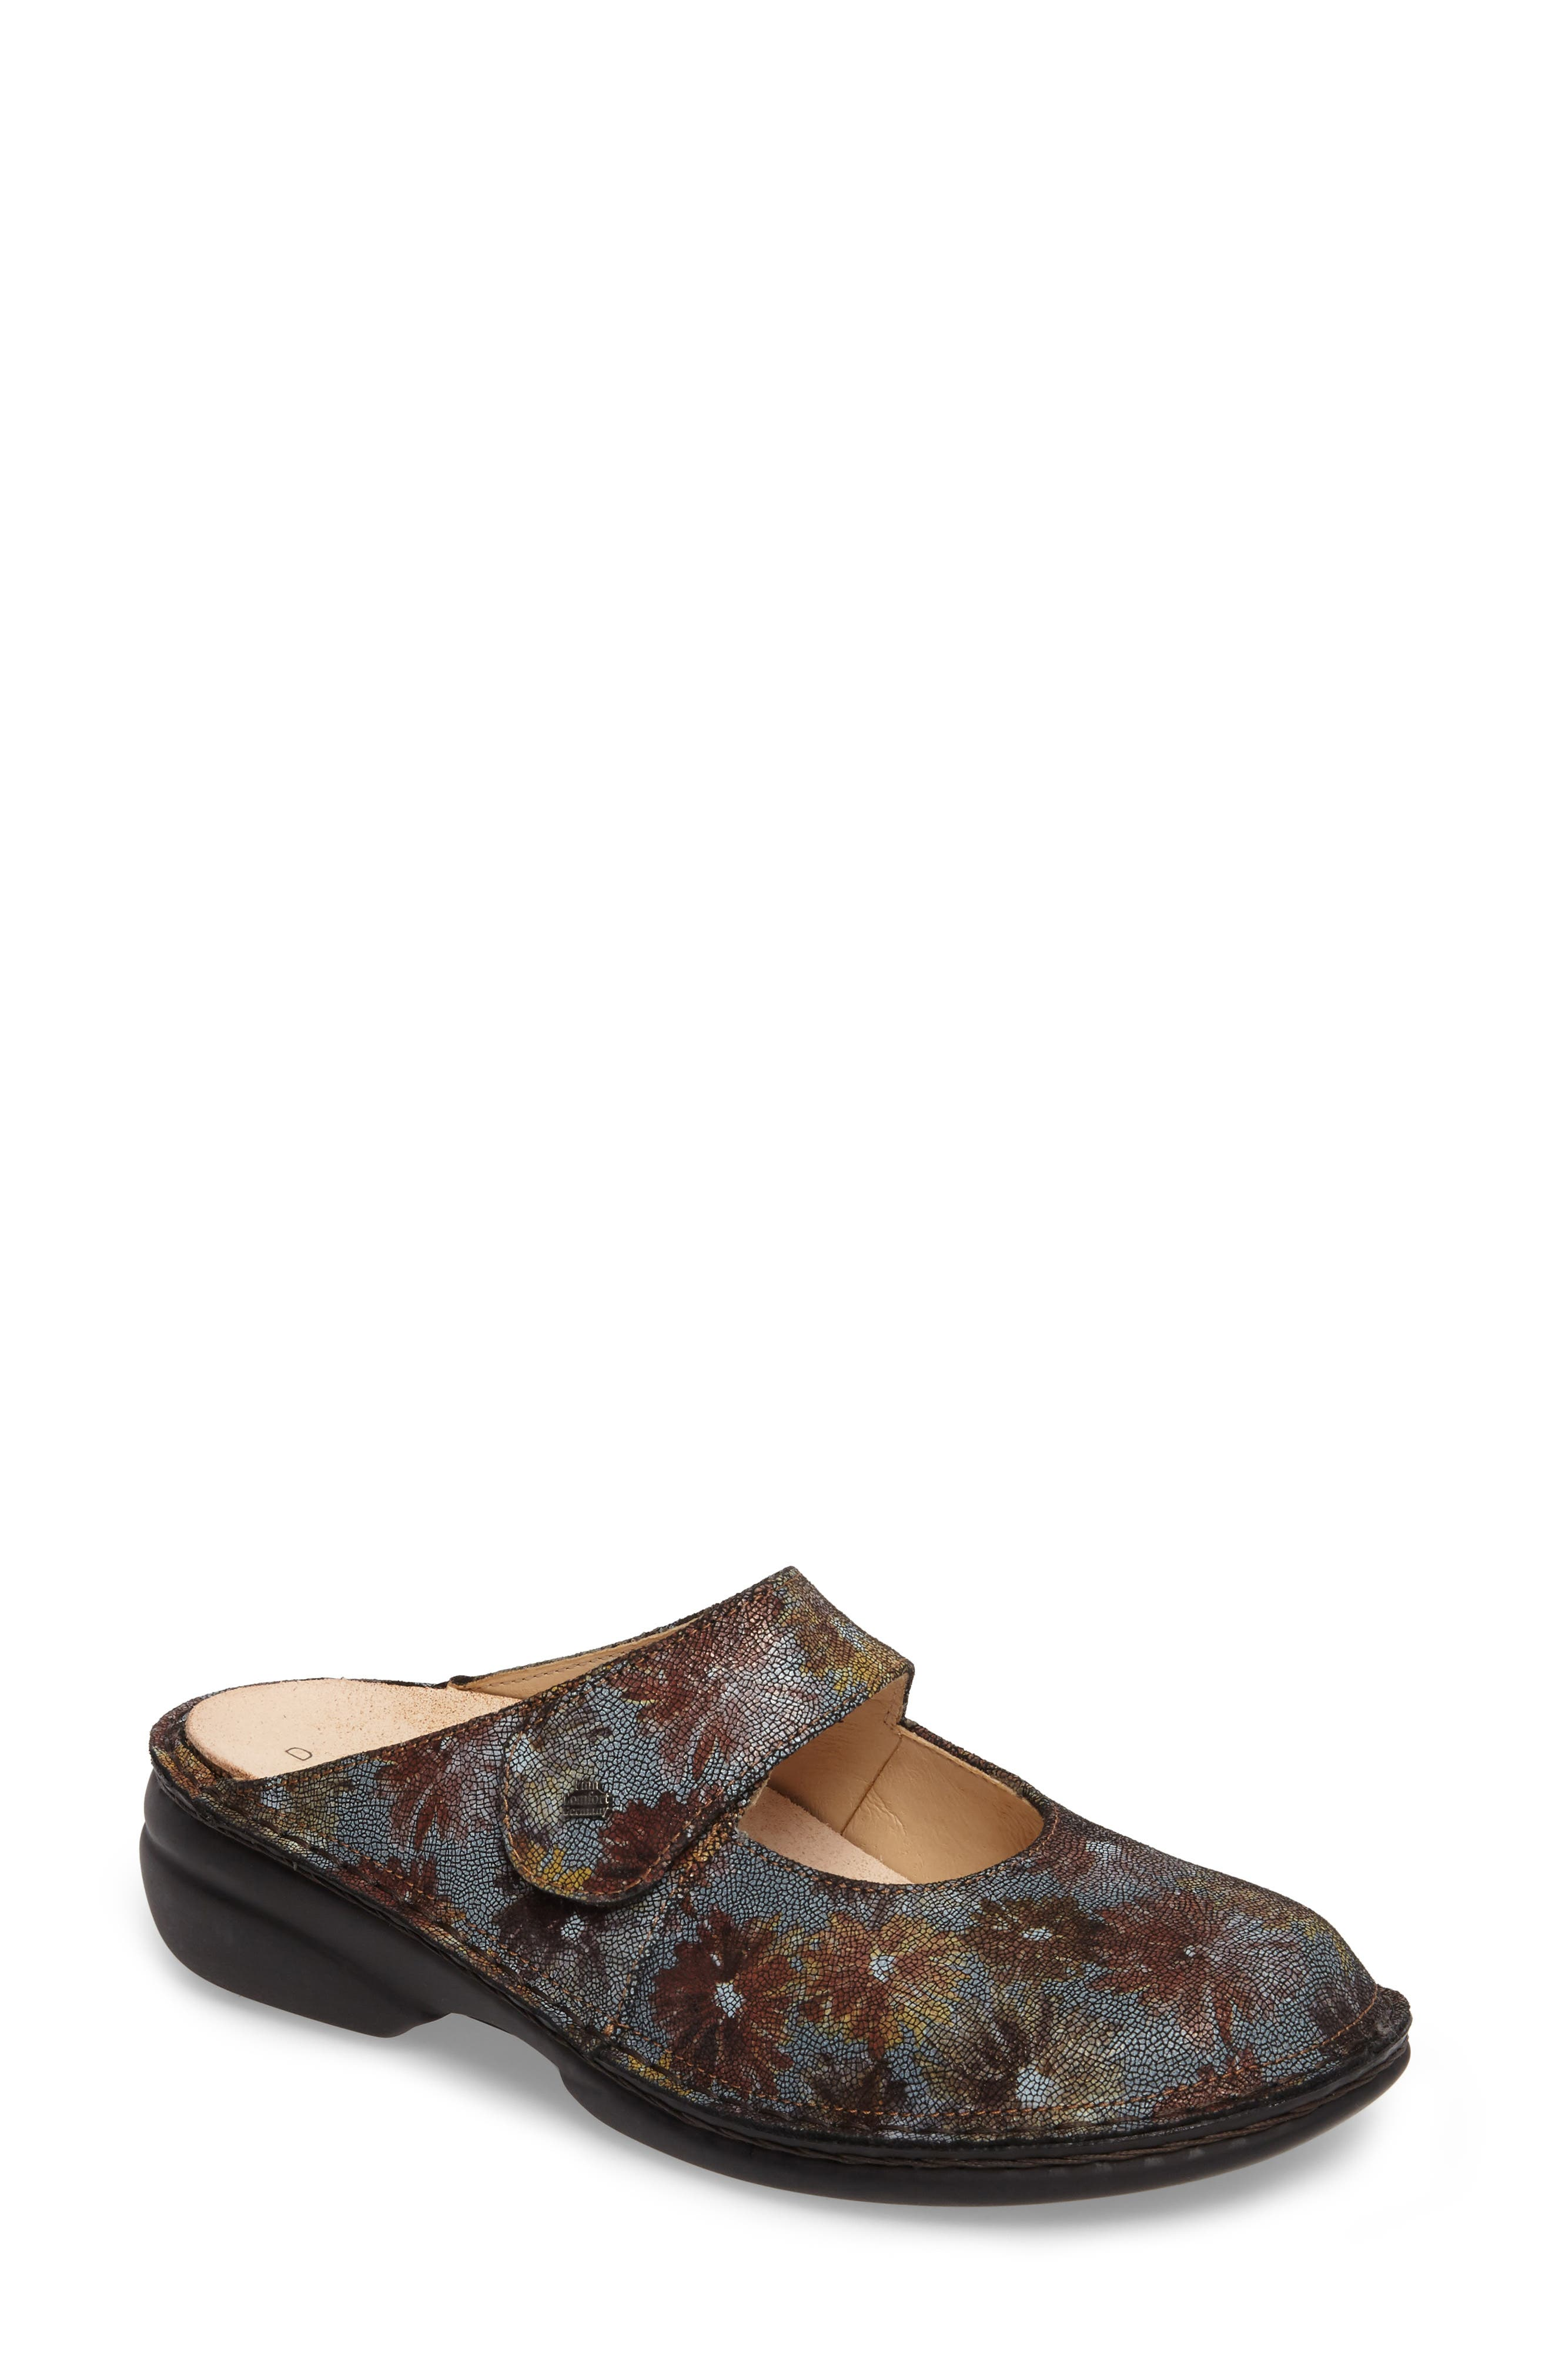 'Stanford' Clog,                             Main thumbnail 1, color,                             Brown Leather